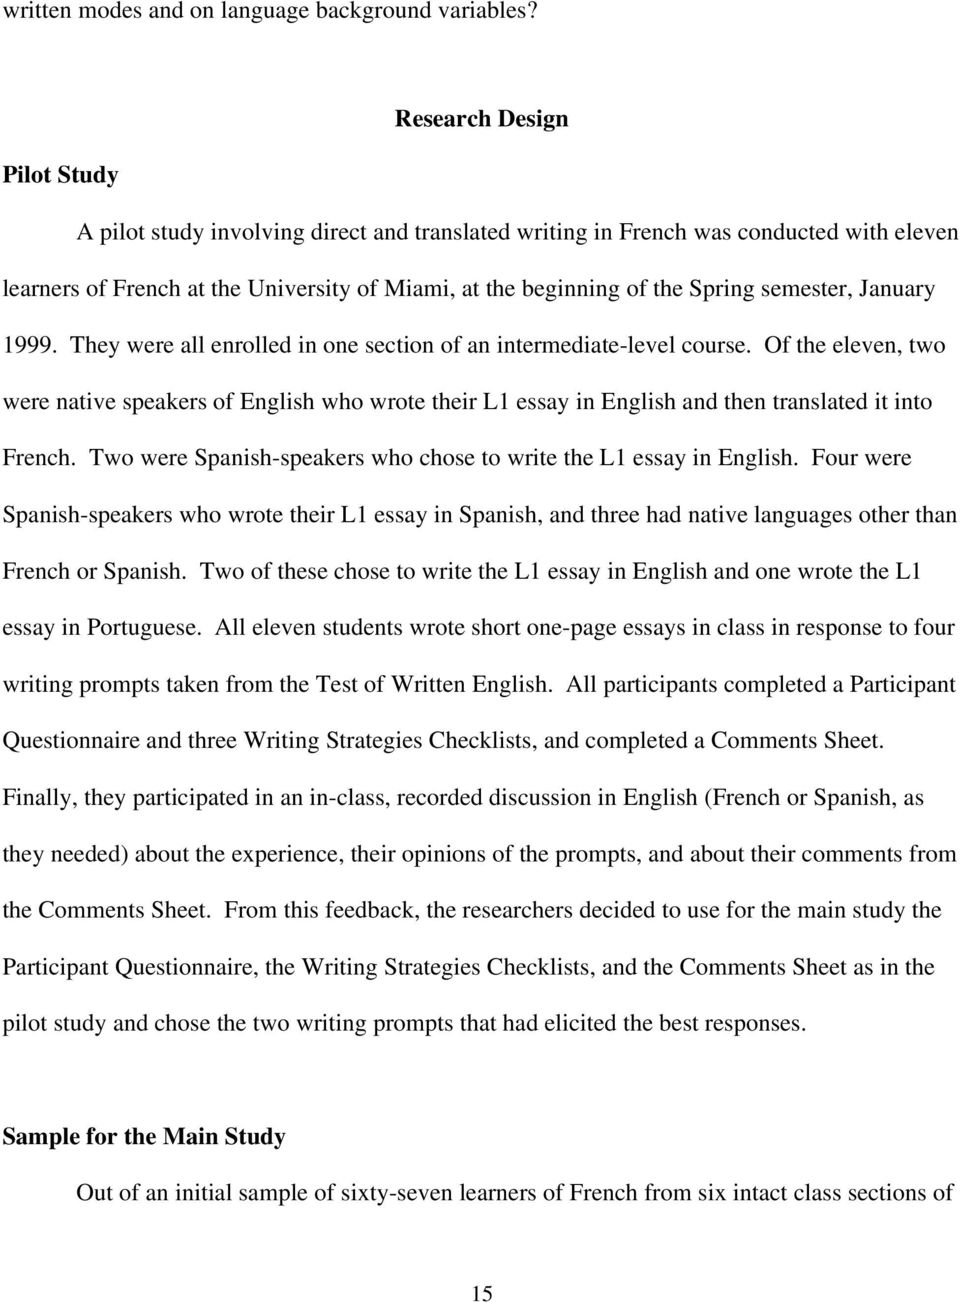 002 Essay Example Essays In Spanish Direct Vs Translated Writing What Students Do And The Google Translate Pa Write Your My Teaching Phrases How To An About Yourself Fascinating Tips For Written Full